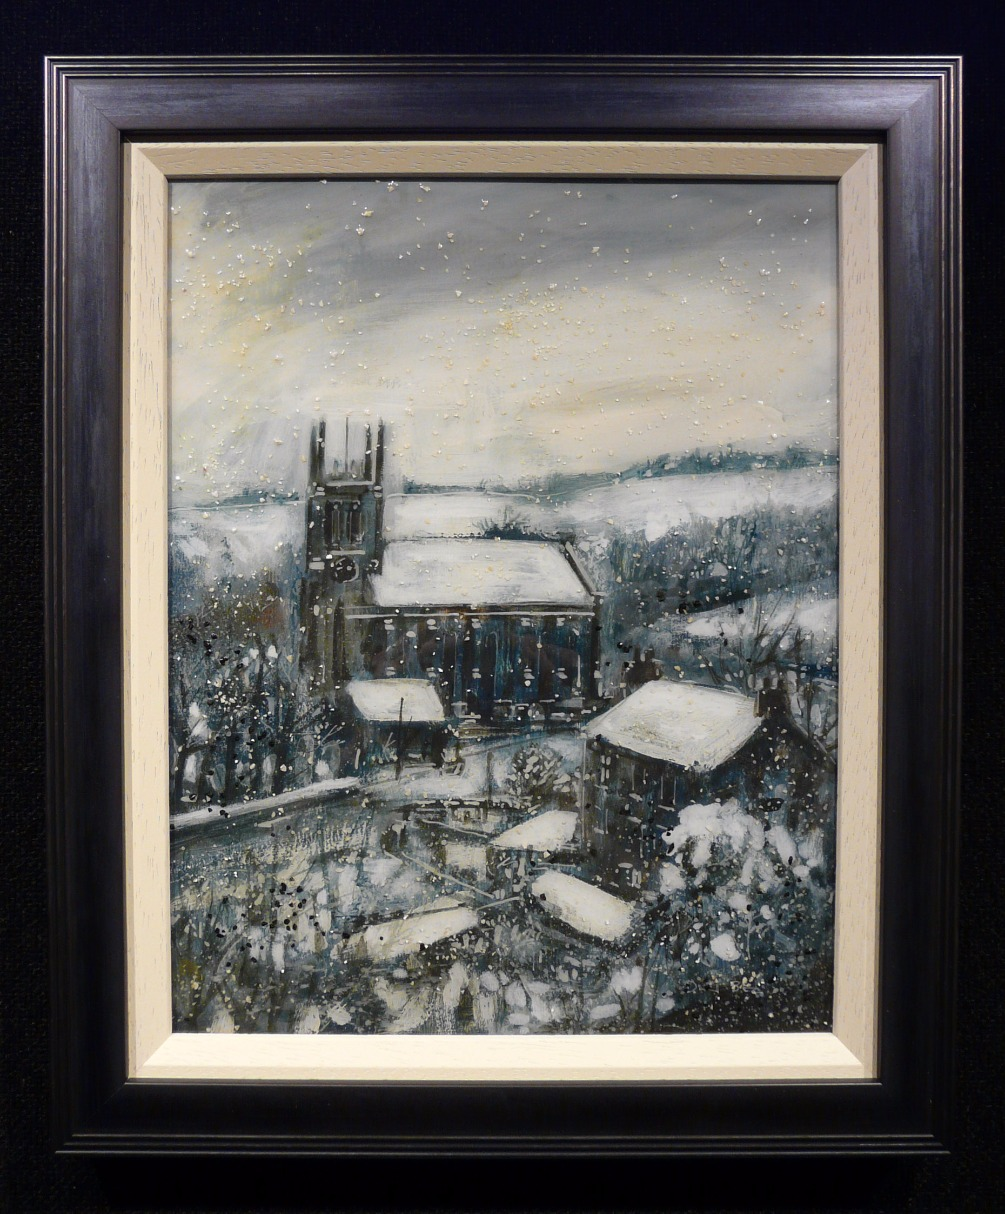 Saddleworth Church by David Bez